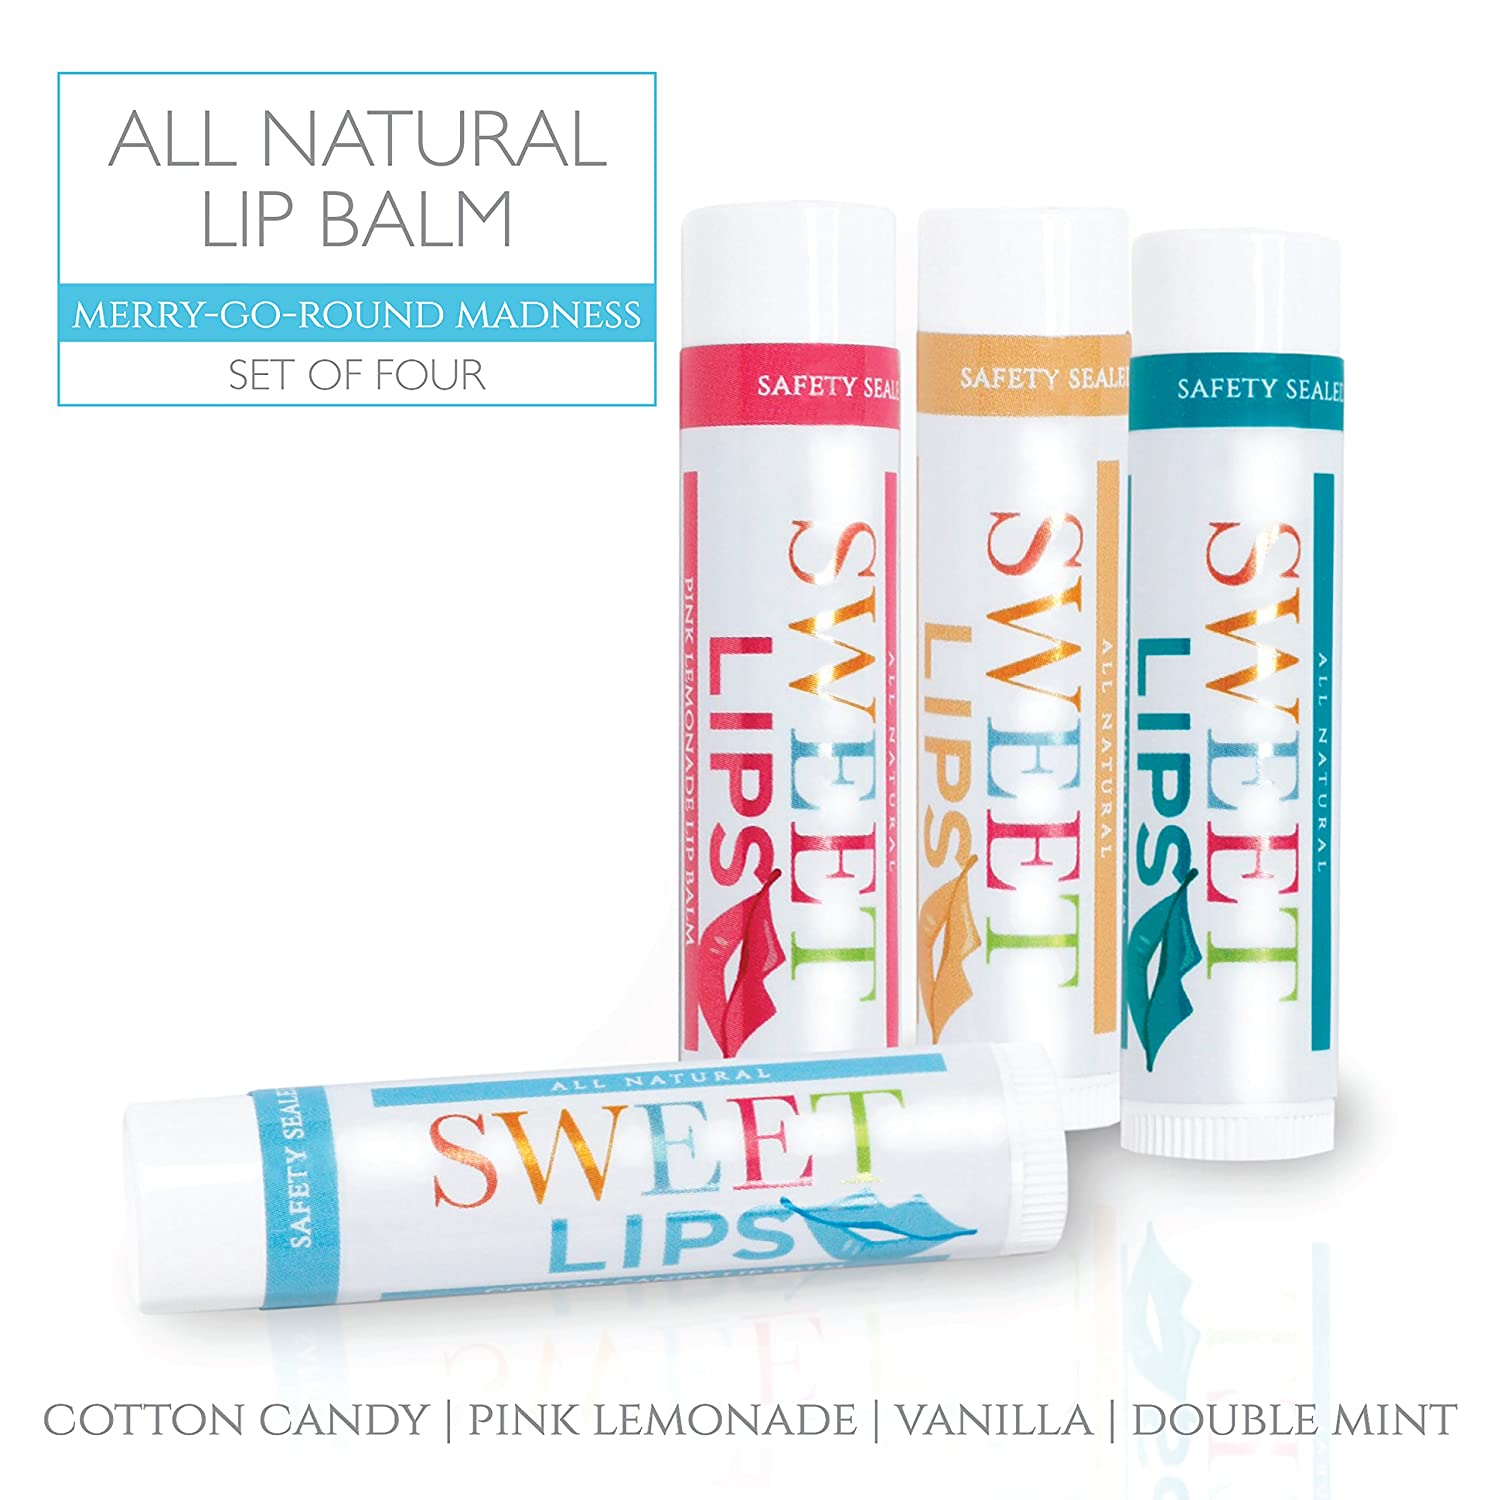 Sweet Lips All Natural Lip Balm by L'AUTRE PEAU | Cotton Candy, Double Mint, Pink Lemonade & Vanilla Flavors - Special 4 Pack Gift Set | Moisturizer (Natural Beeswax) | The Merry-Go-Round Madness Set